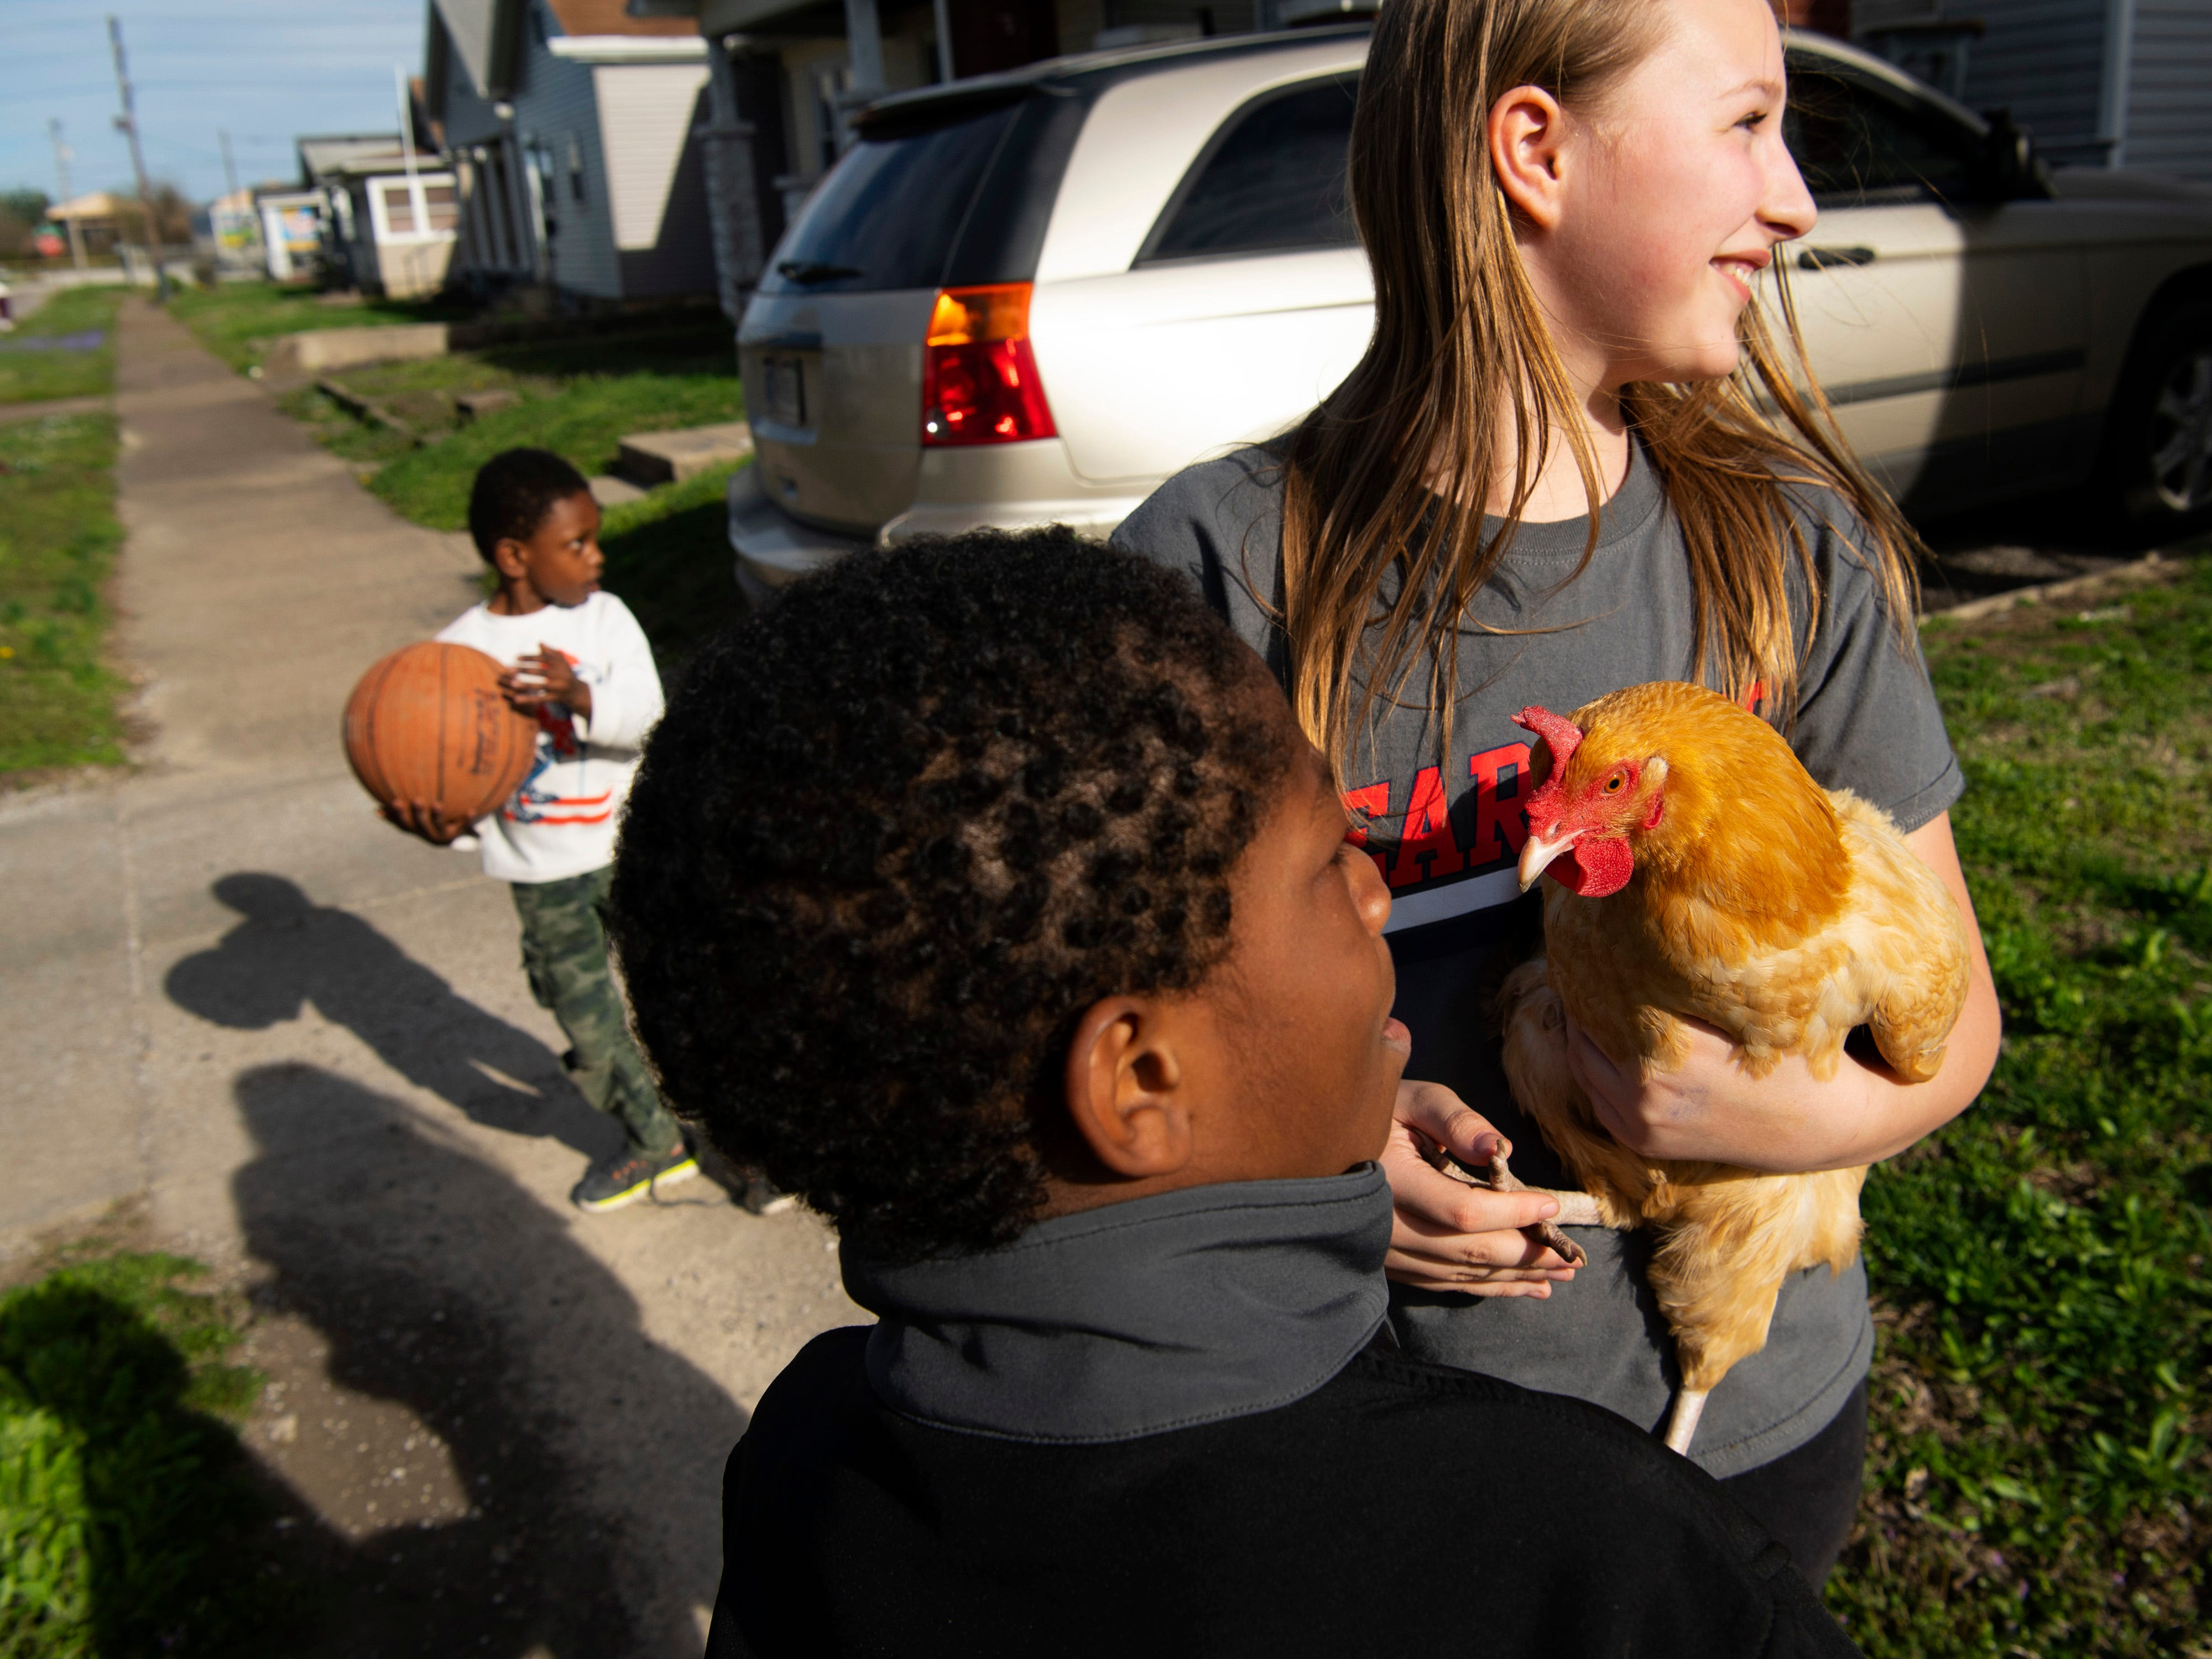 The Jimtown neighborhood is teeming with children and sometimes their pets, like Bailey Post, 12, and her chicken Tuesday evening. Brothers Jave'andre Burton, 8, front, and Treyveon Burton, 4, were also enjoying the sunny afternoon.